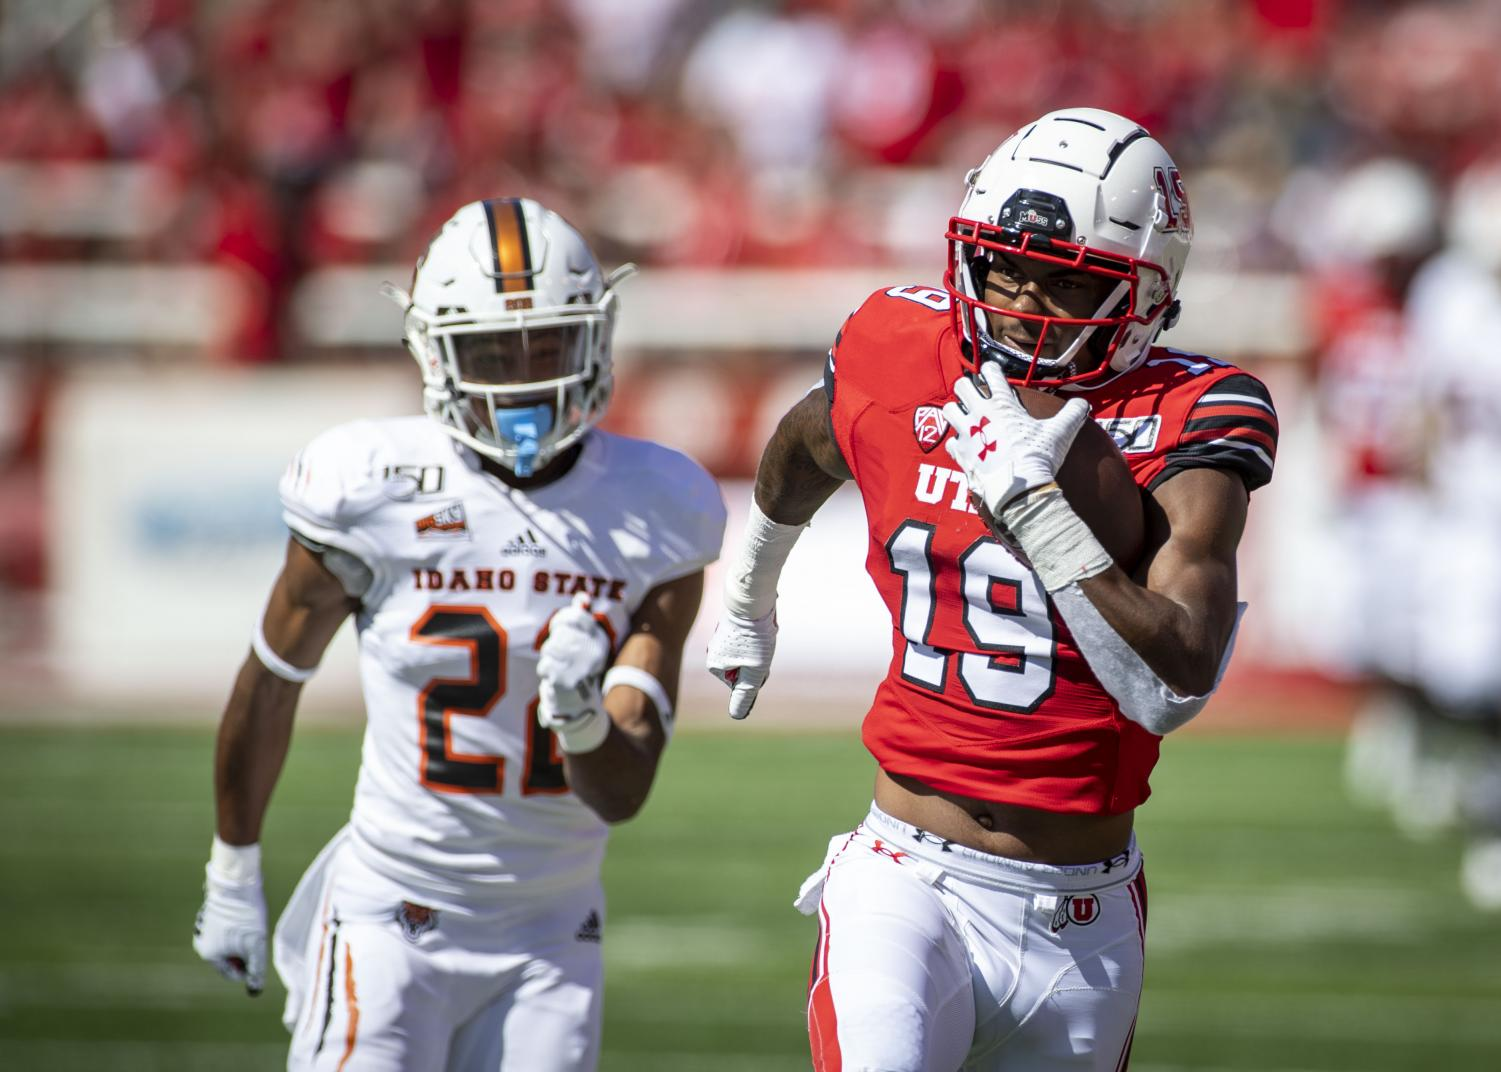 University of Utah sophomore wide receiver Bryan Thompson (19) makes a catch and runs in to the endzone for a touchdown during an NCAA Football game vs. The Idaho State Bengals at Rice Eccles Stadium in Salt Lake City, Utah on Saturday, Sept. 14, 2019. (Photo by Kiffer Creveling | The Daily Utah Chronicle)